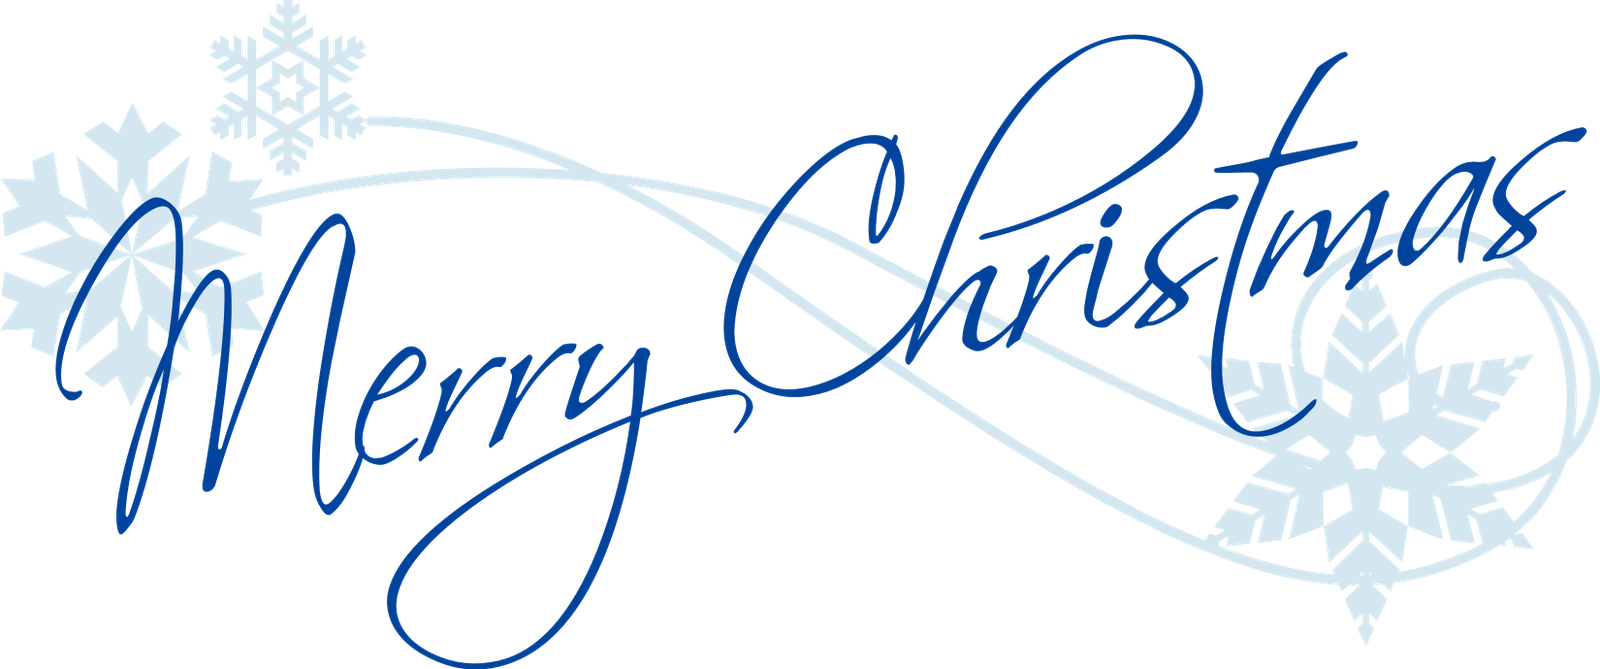 Blue christmas snowflake clipart free vector black and white Merry Christmas Text PNG Transparent Free Images | PNG Only vector black and white